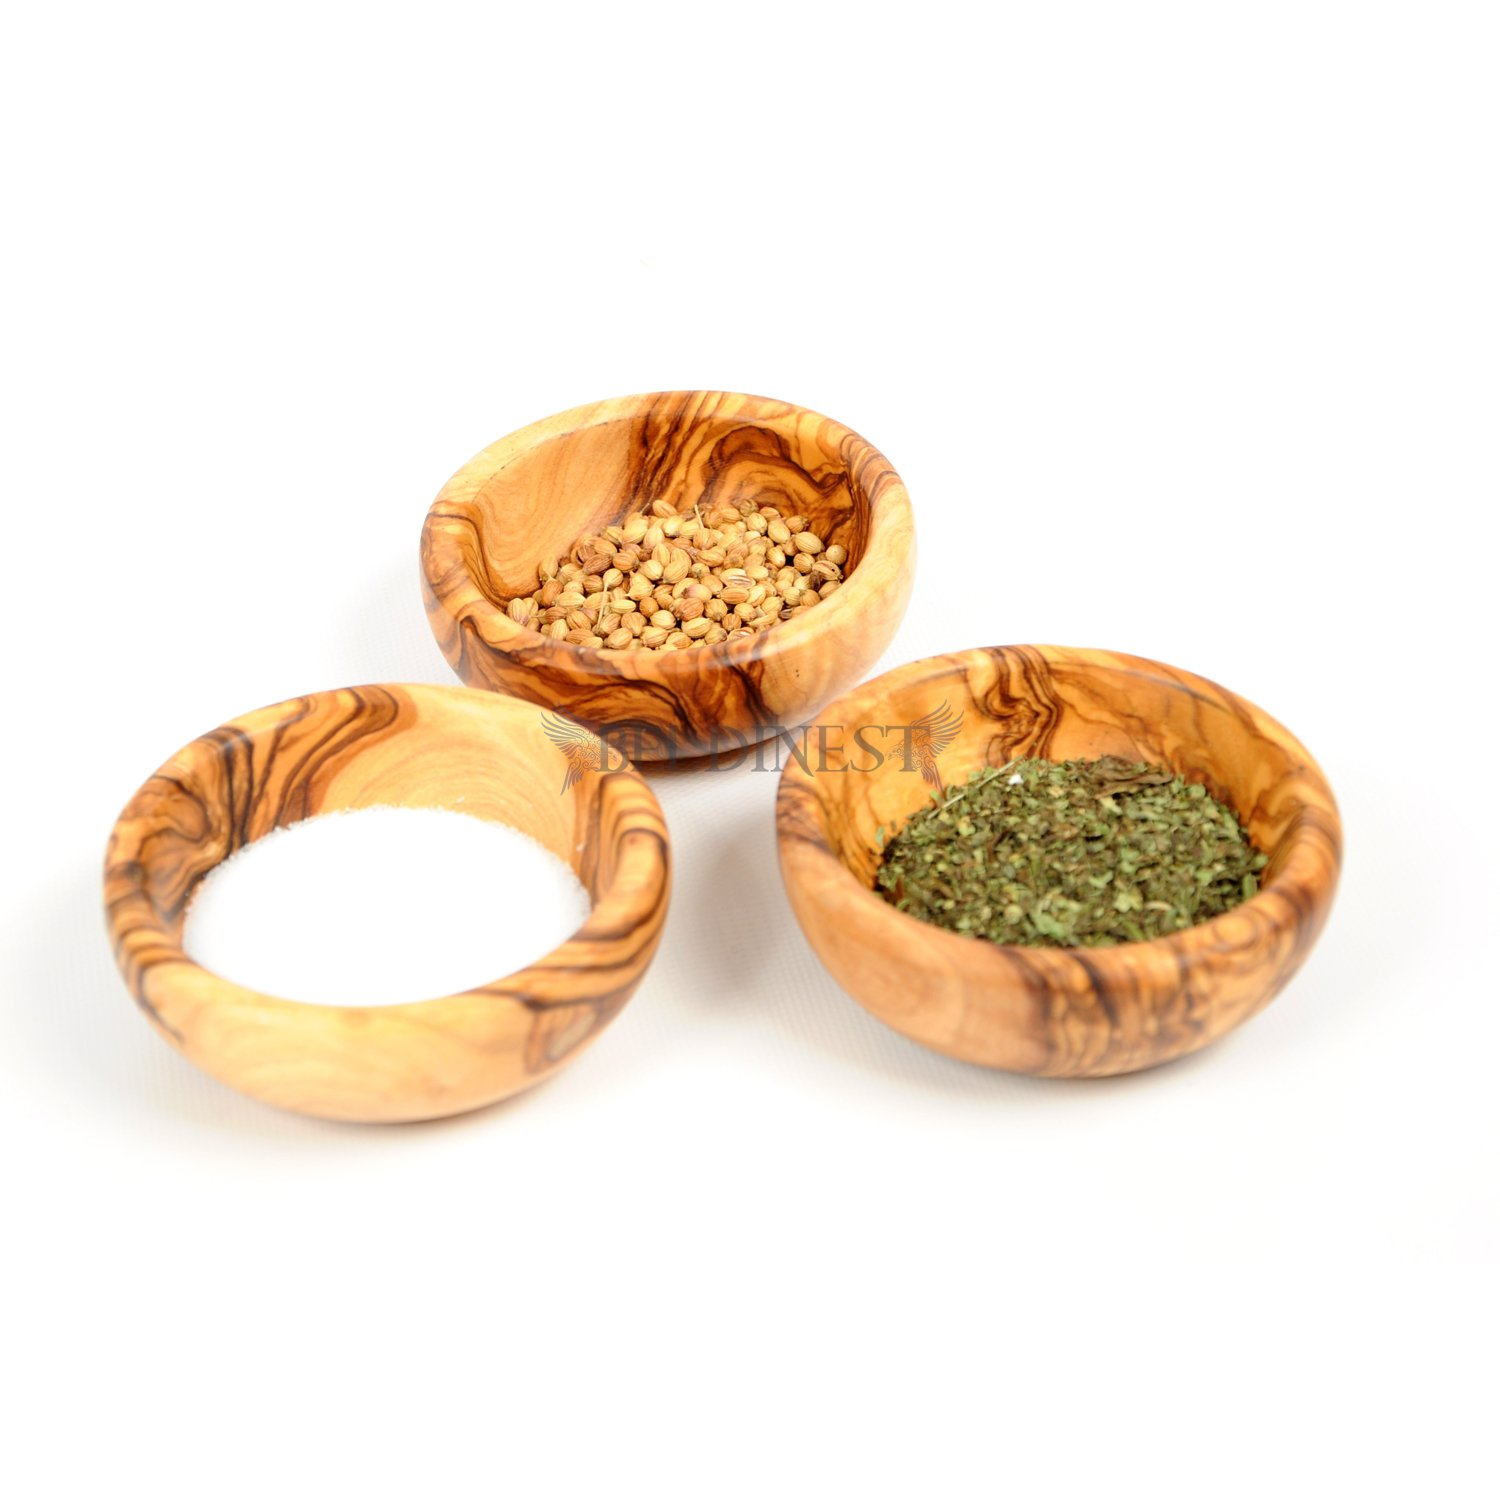 3 Olive Wood Mini Spice Bowls Set Of 3 Handmade Bowls Handcrafted Wooden Mini Bowls